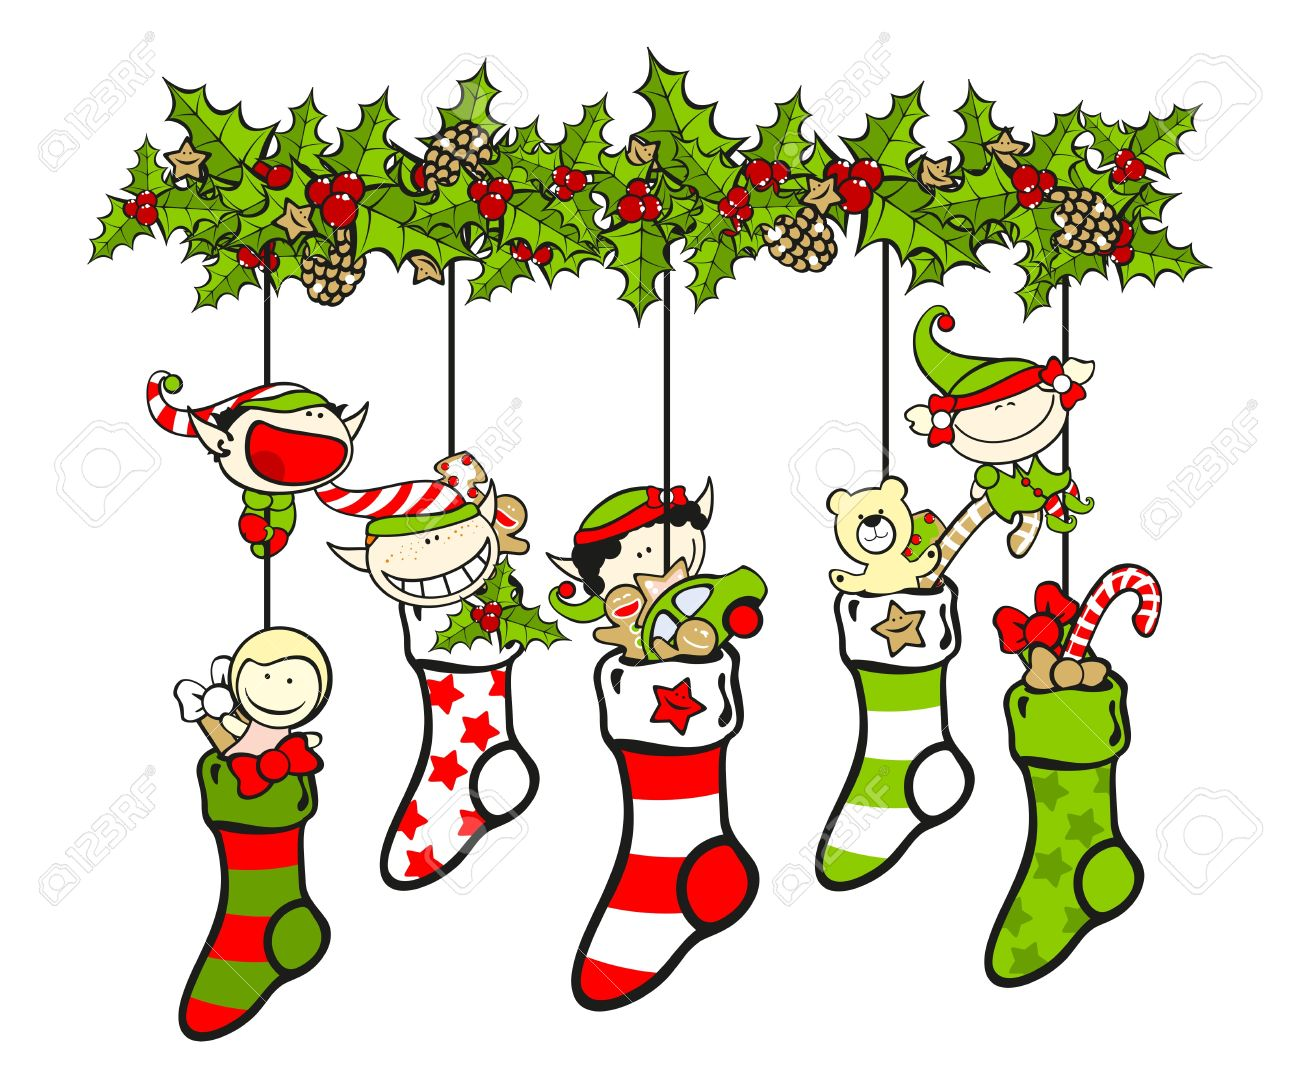 christmas stockings filled with presents and elves royalty free